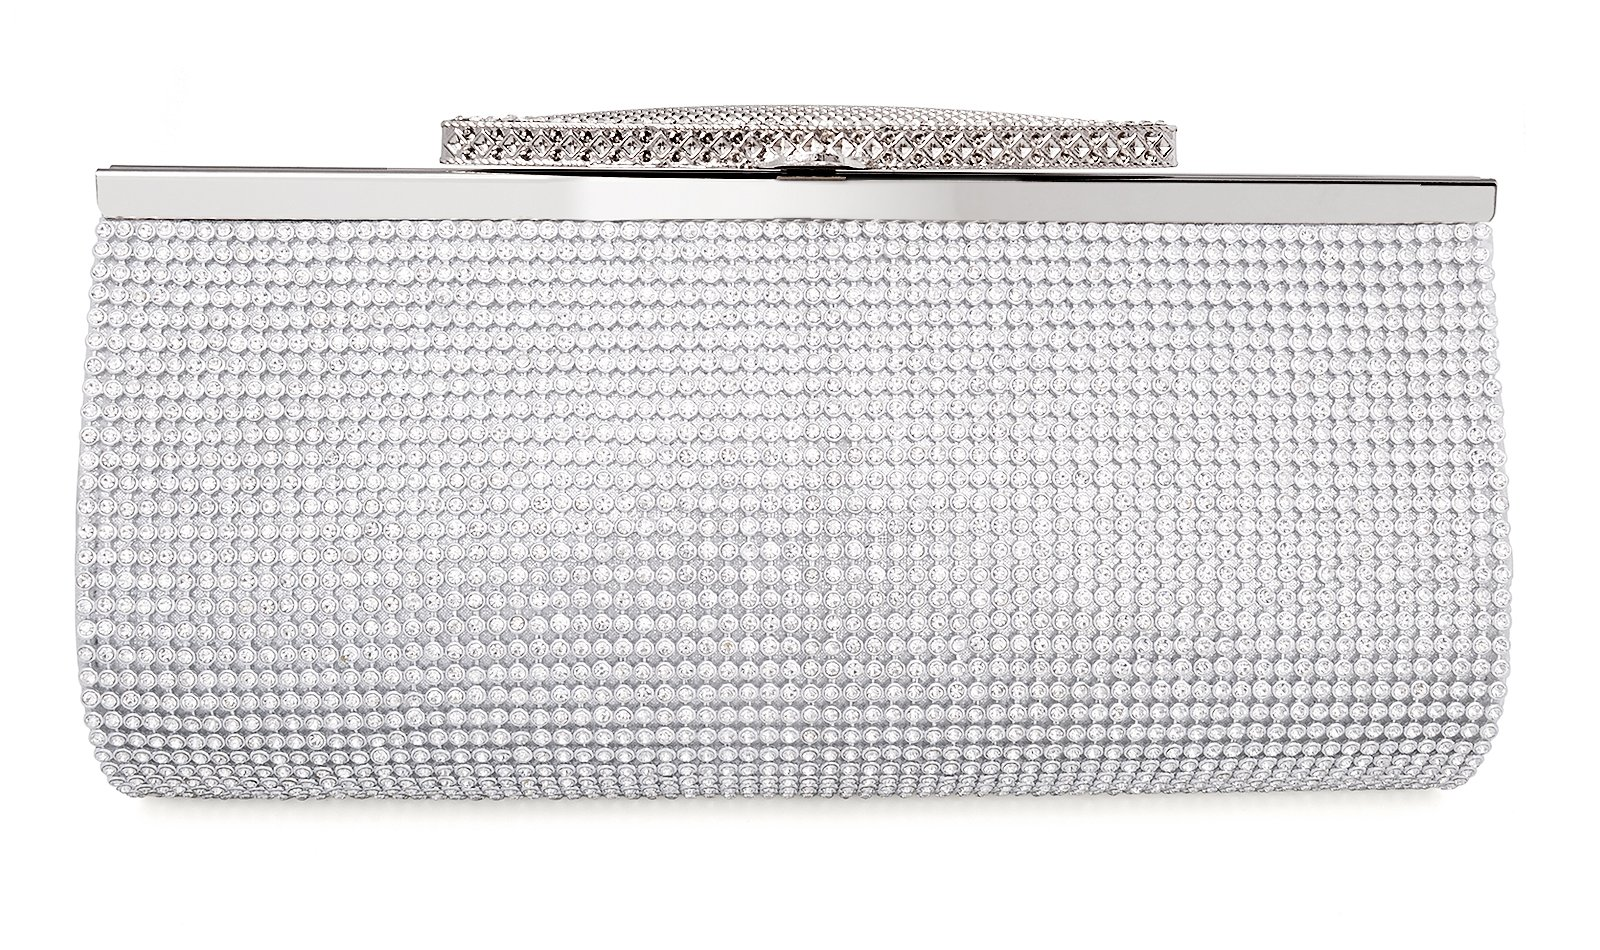 Crystal Clutch for Women Large Evening Bag (silver)